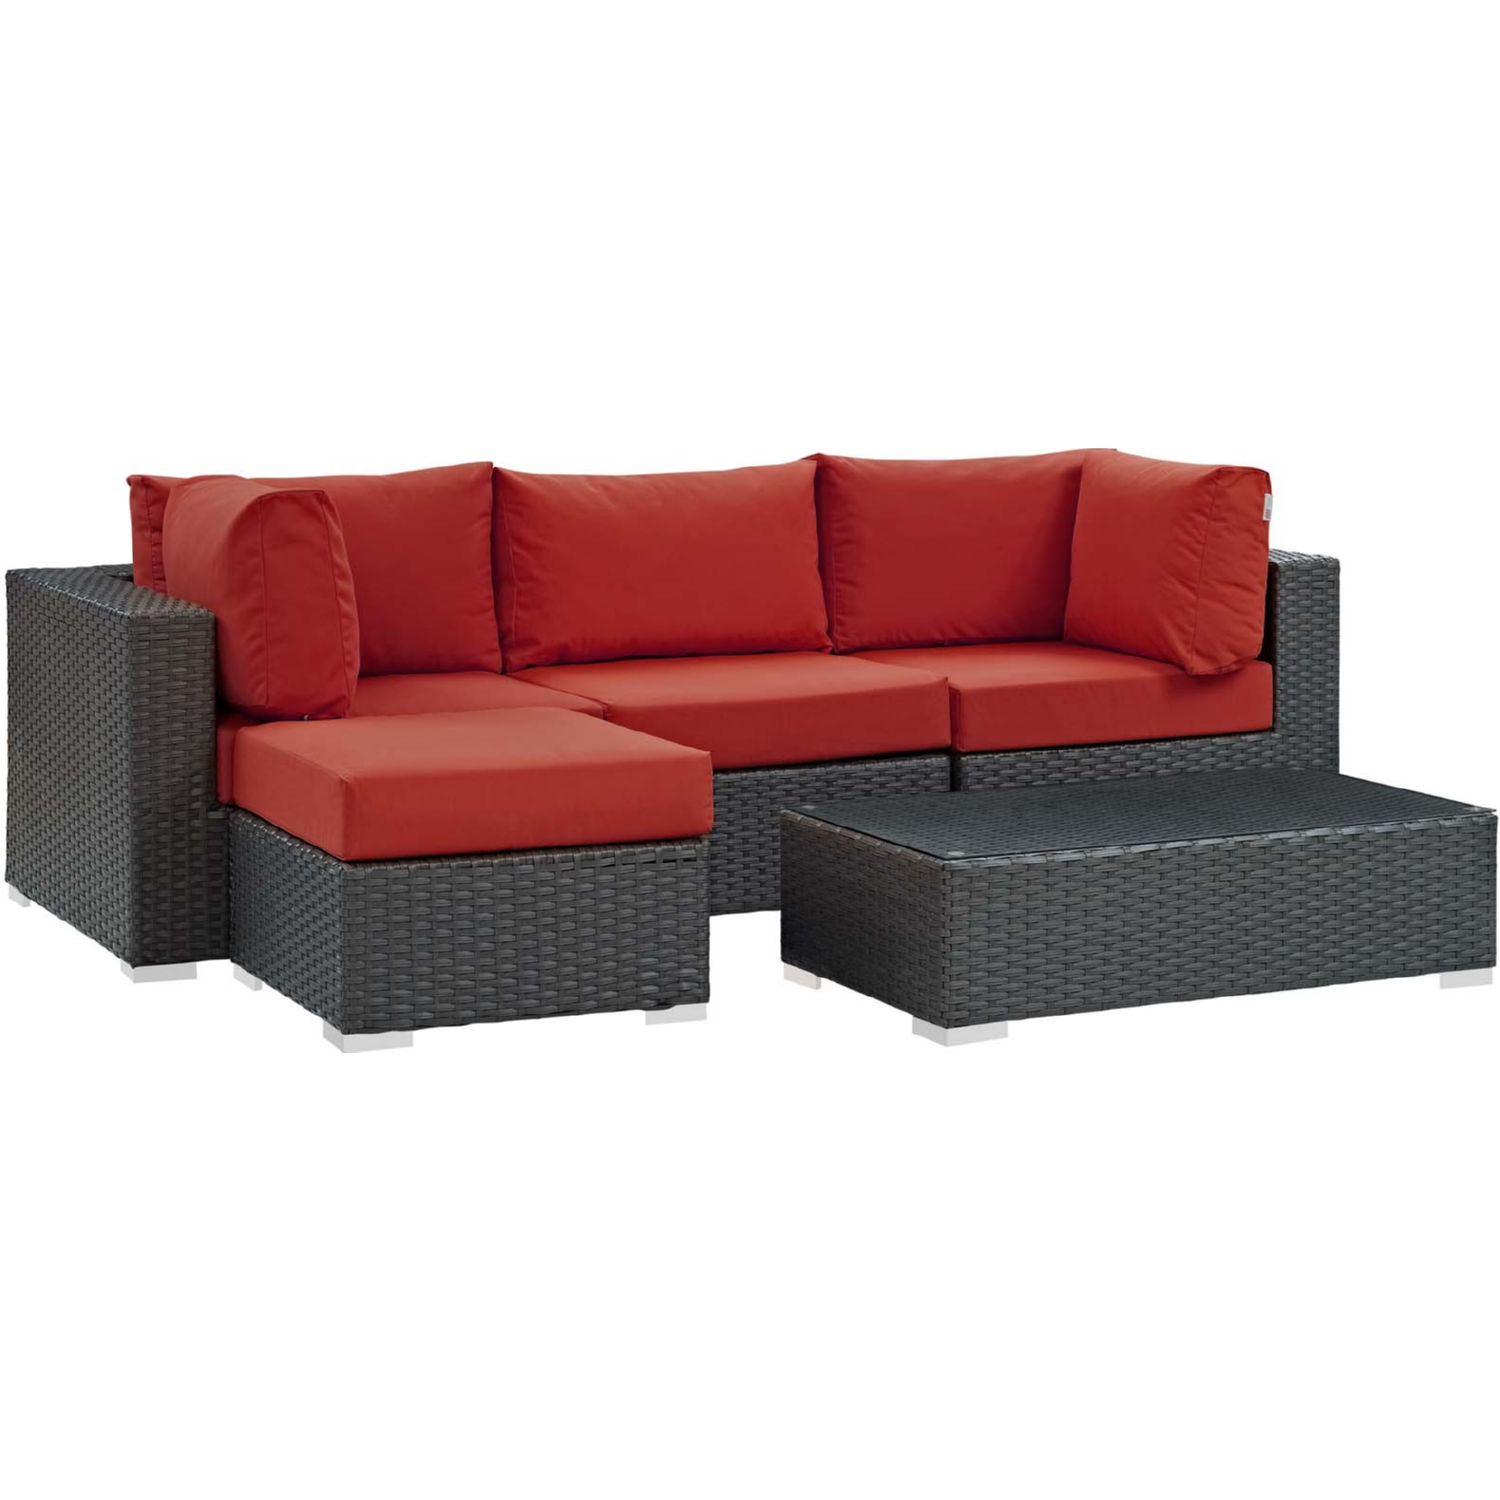 Sojourn 5 Piece Outdoor Sectional Sofa Set w/ Red Sunbrella® by Modway